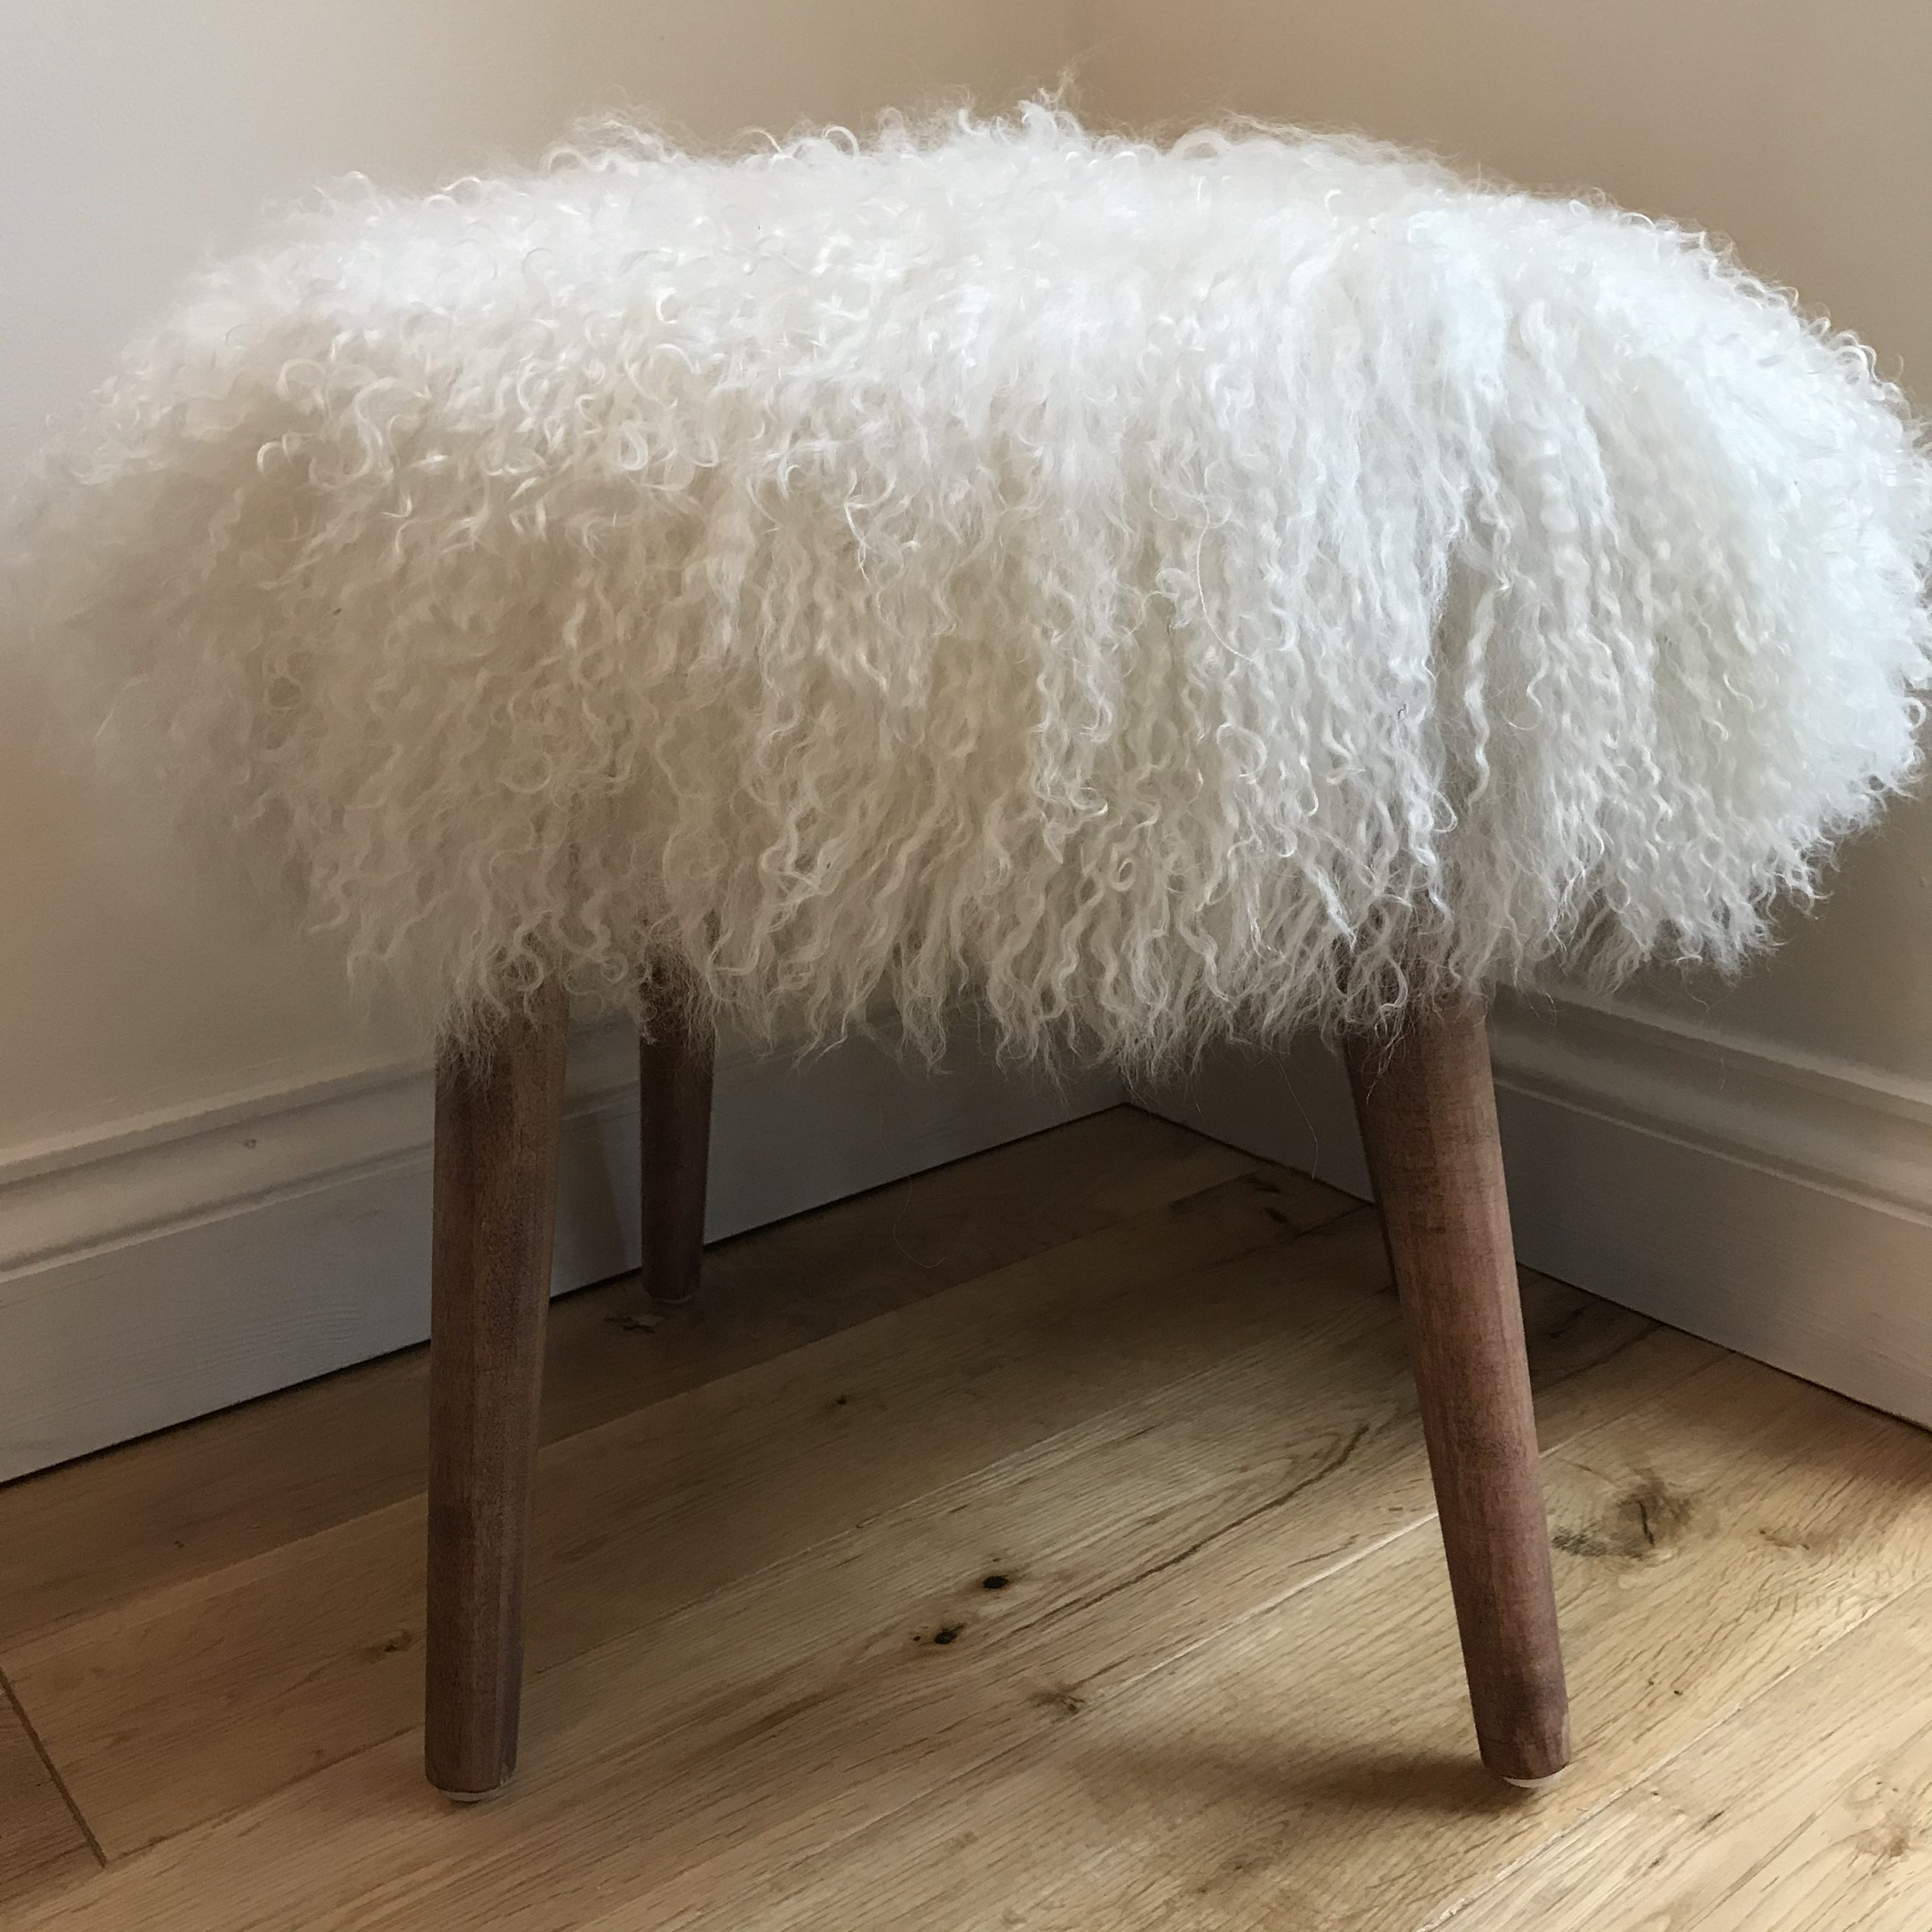 Astonishing Round Natural White Genuine Mongolian Sheepskin Wool Fur Stool Chair With Wooden Legs Pdpeps Interior Chair Design Pdpepsorg